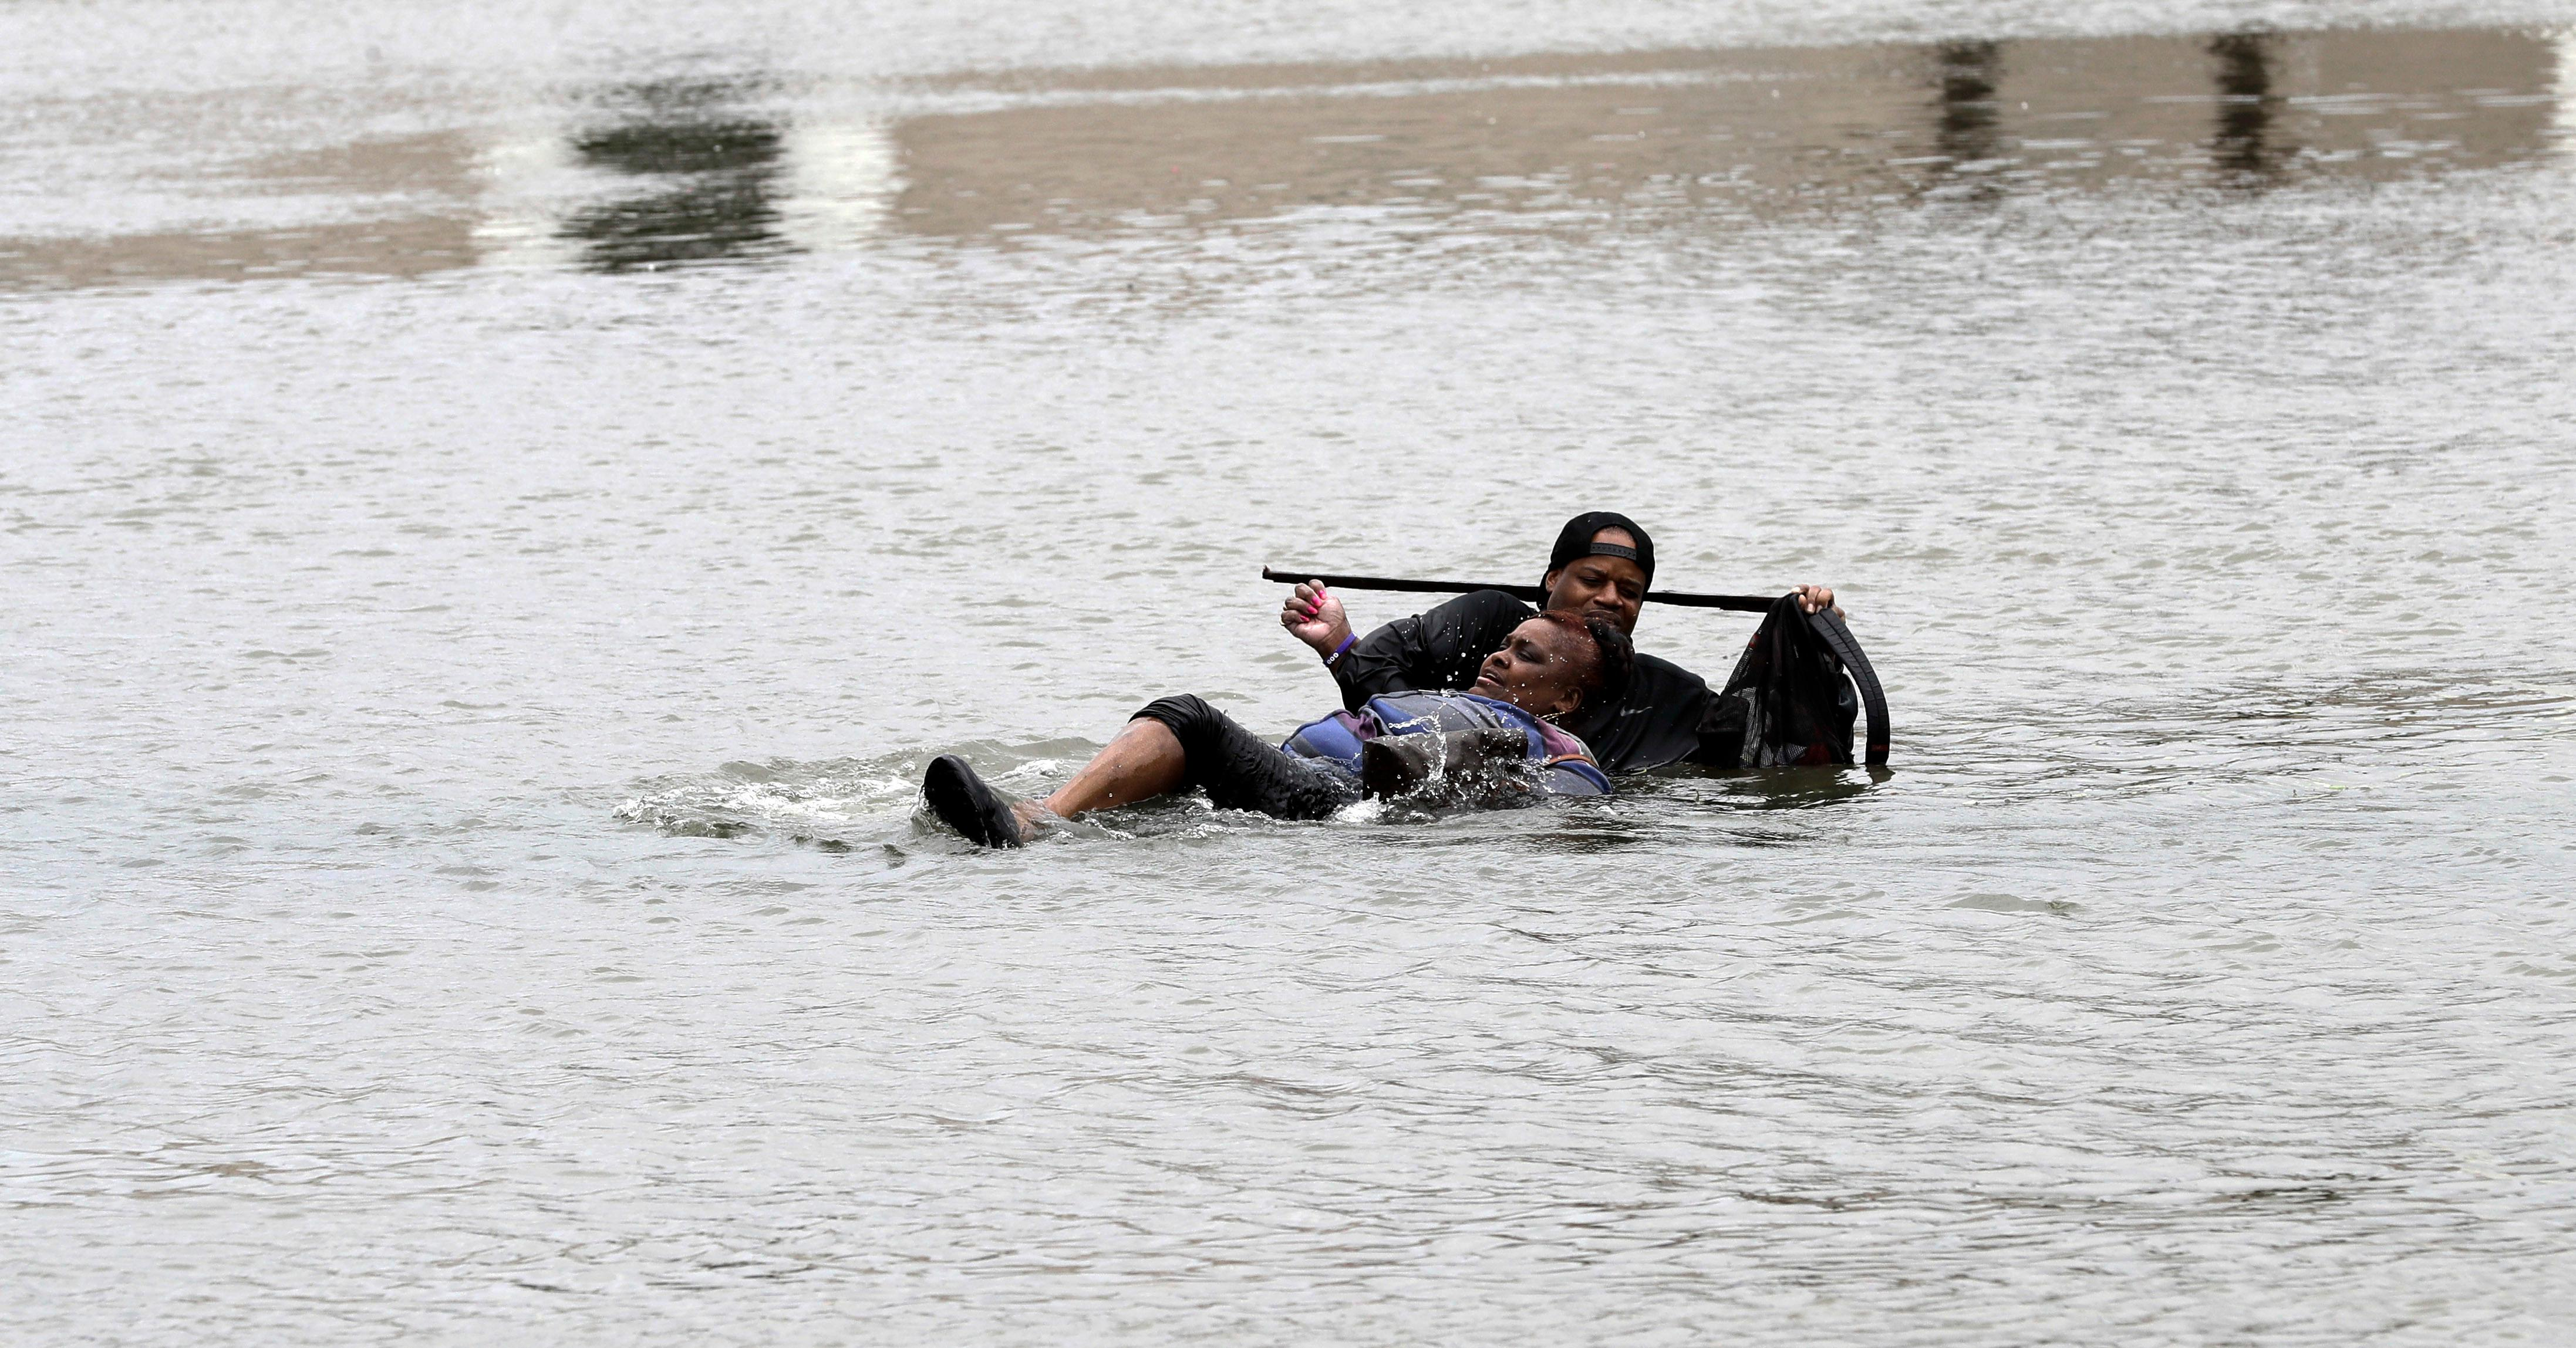 A man helps a woman in floodwaters from Tropical Storm Harvey Sunday, Aug. 27, 2017, in Houston, Texas. The remnants of Hurricane Harvey sent devastating floods pouring into Houston Sunday as rising water chased thousands of people to rooftops or higher ground. (AP Photo/David J. Phillip)